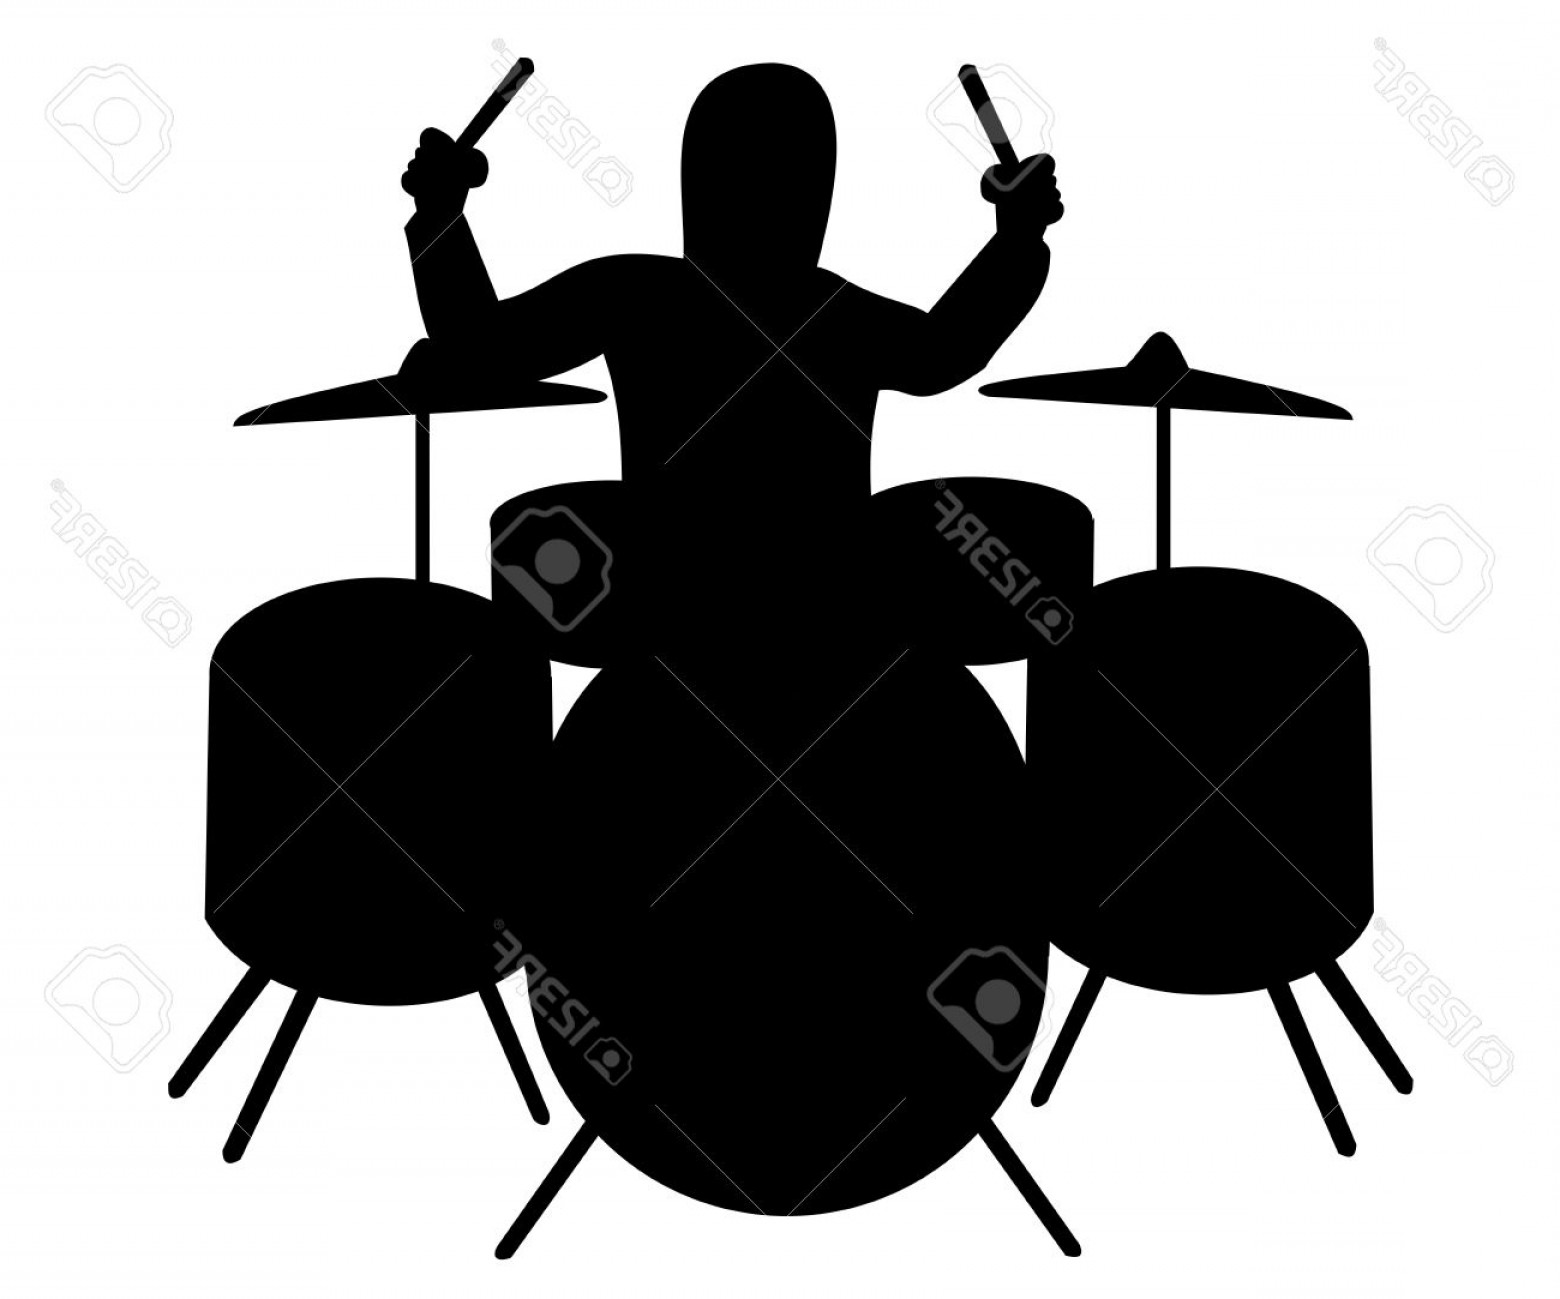 Drum Vector Art: Photosilhouette Of Drummer Playing The Drum Kit